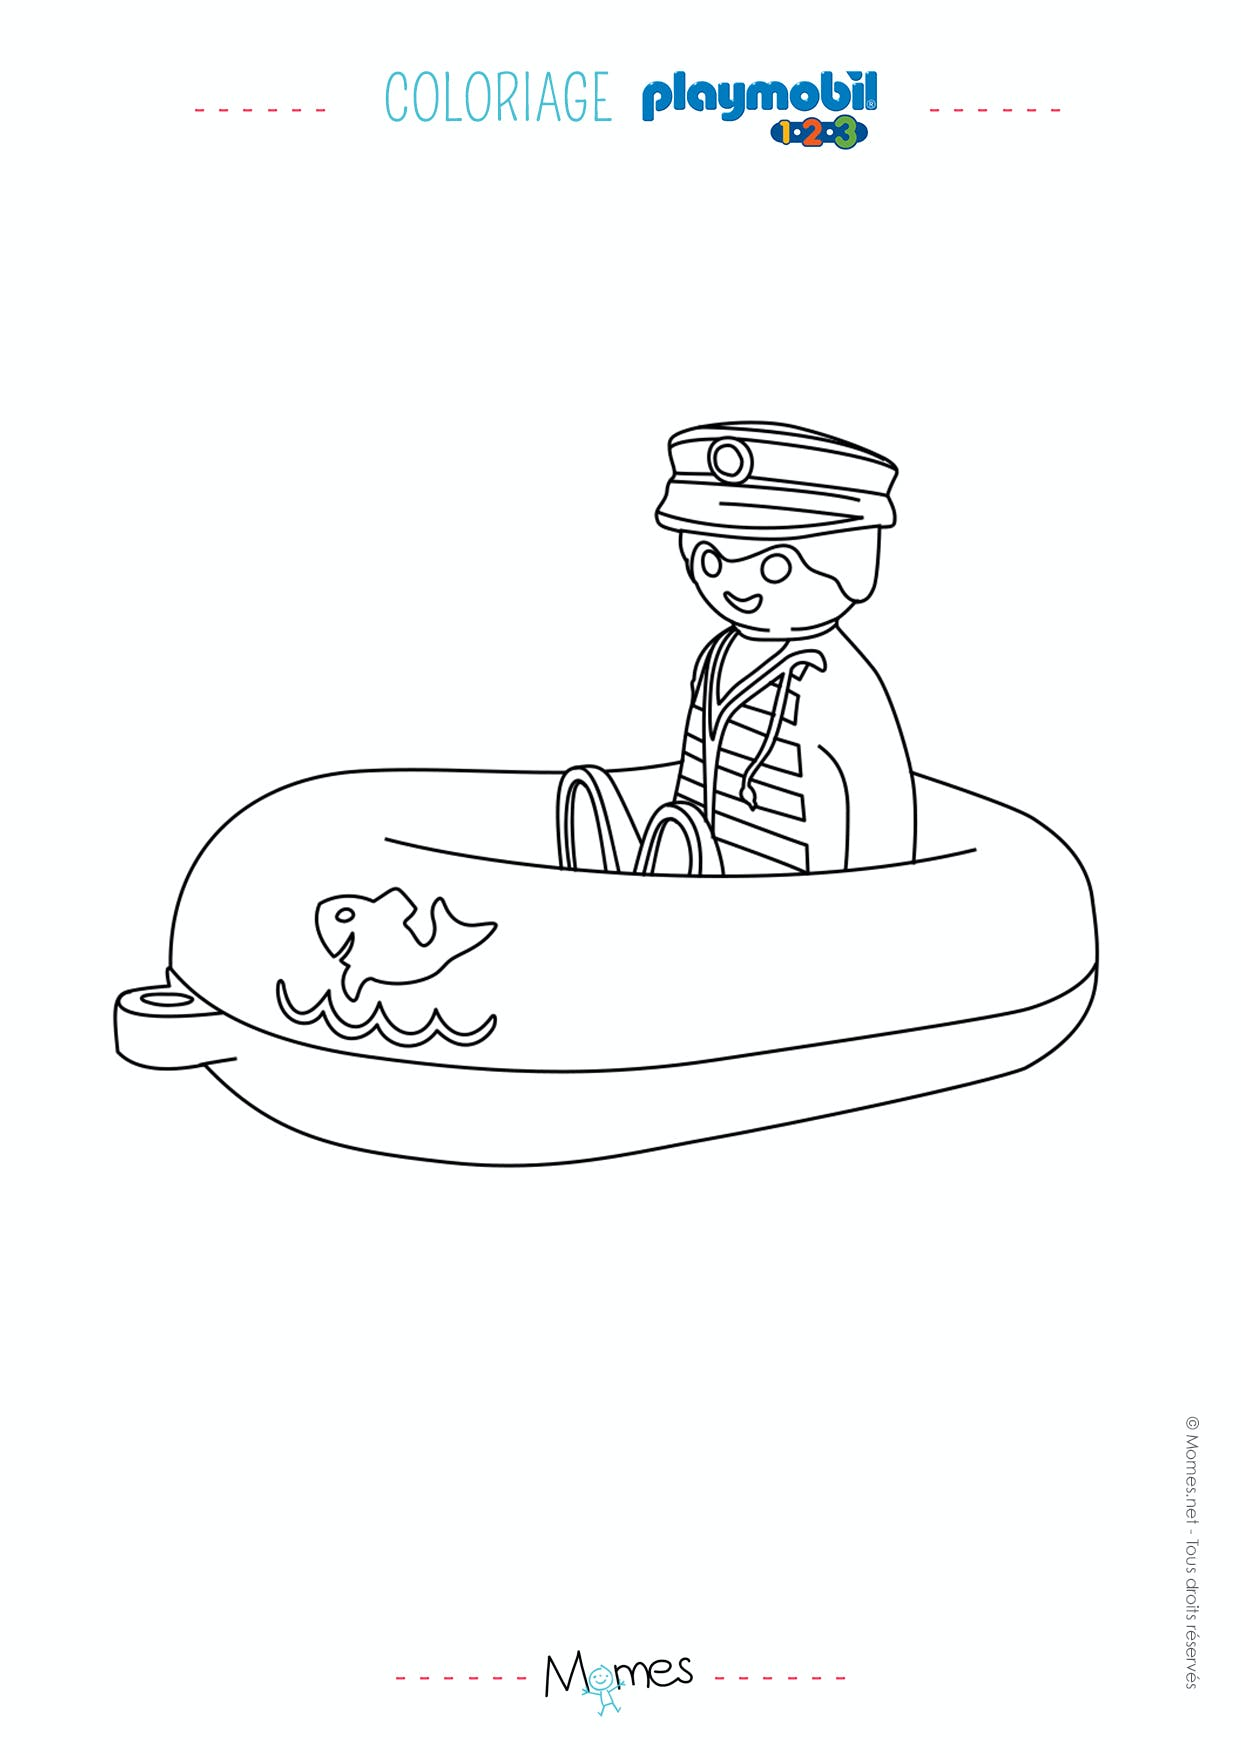 Coloriage le bateau et son capitaine playmobil 123 - Coloriages a colorier ...